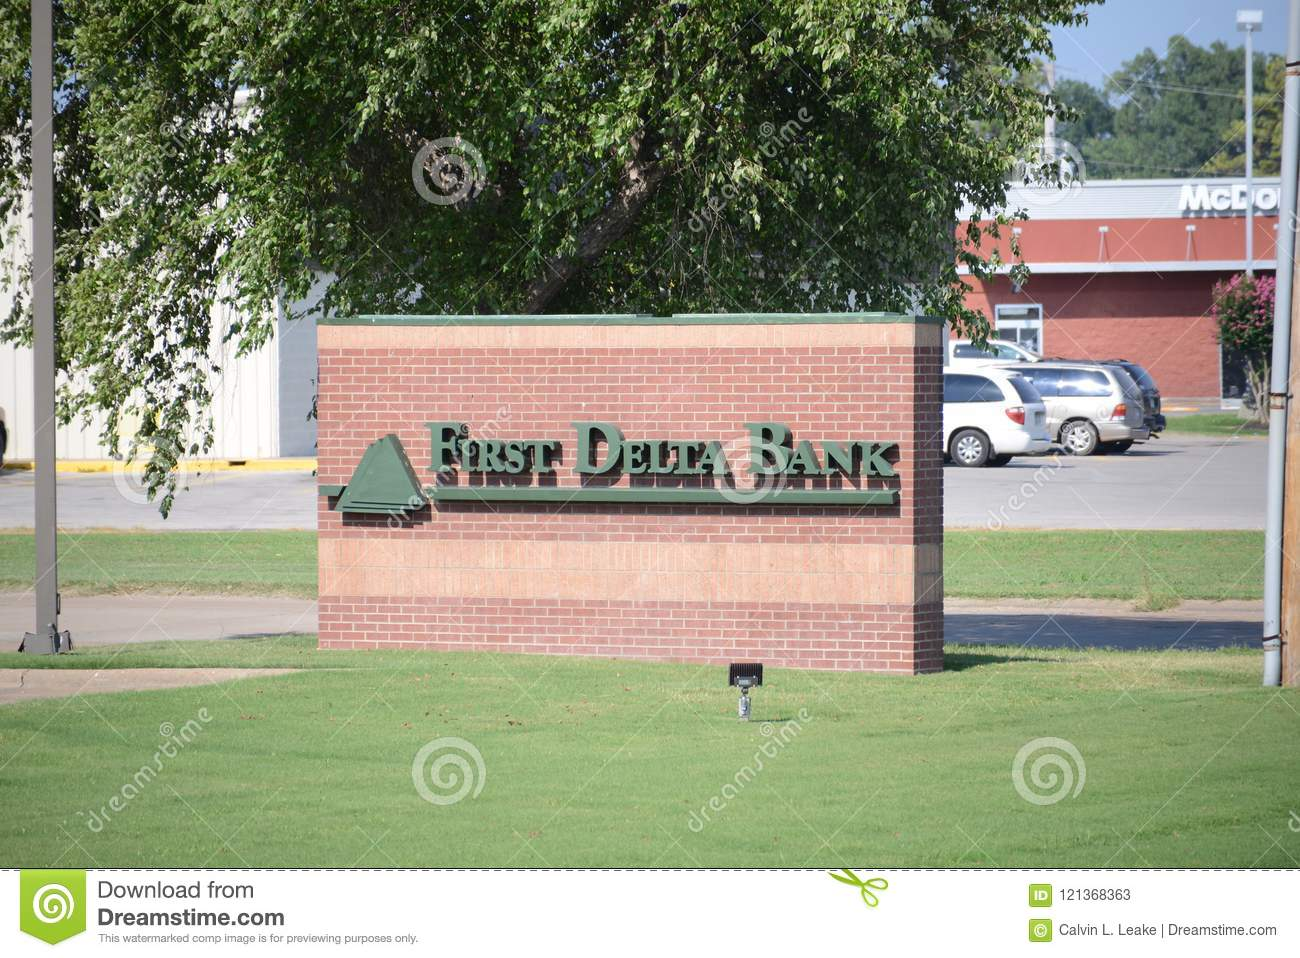 Bank Of The West Auto Loan >> First Delta Bank West Memphis Arkansas Editorial Stock